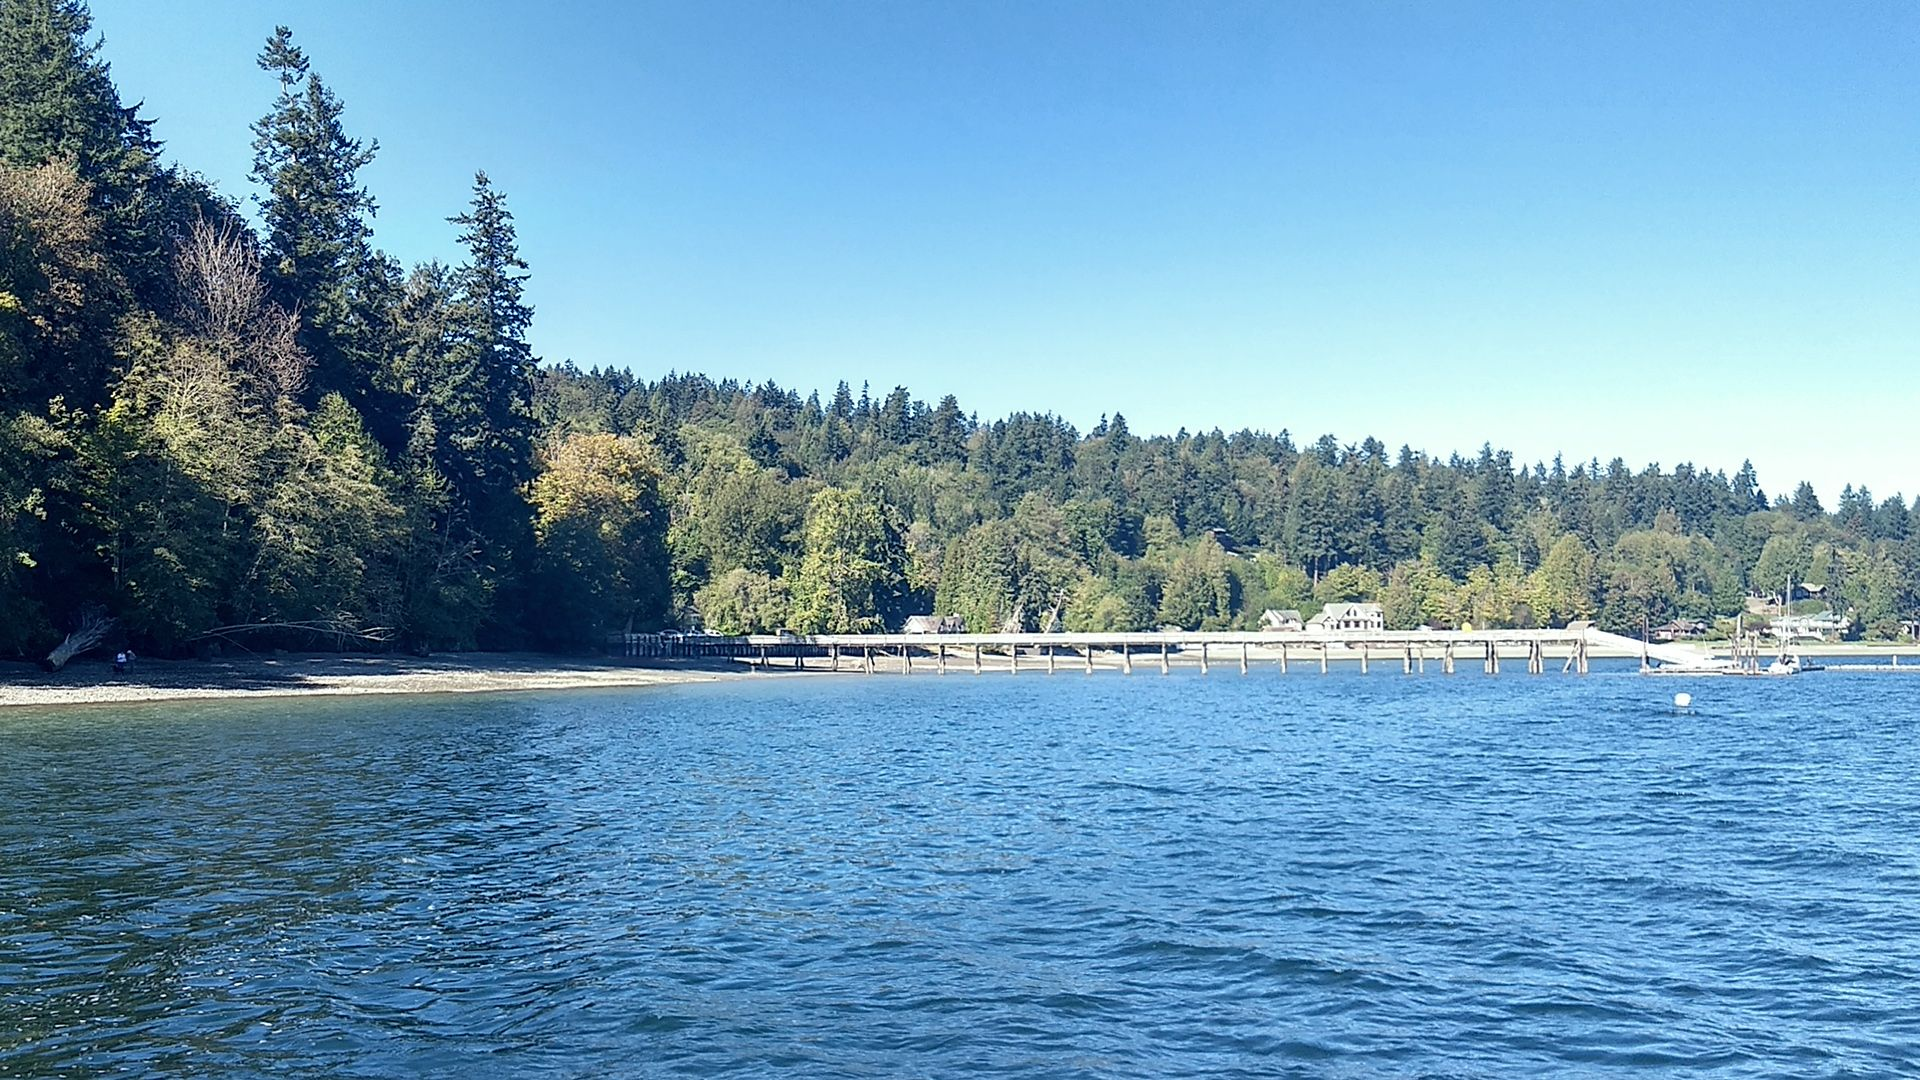 A heavily wooded shoreline with a dock extending far into the water.